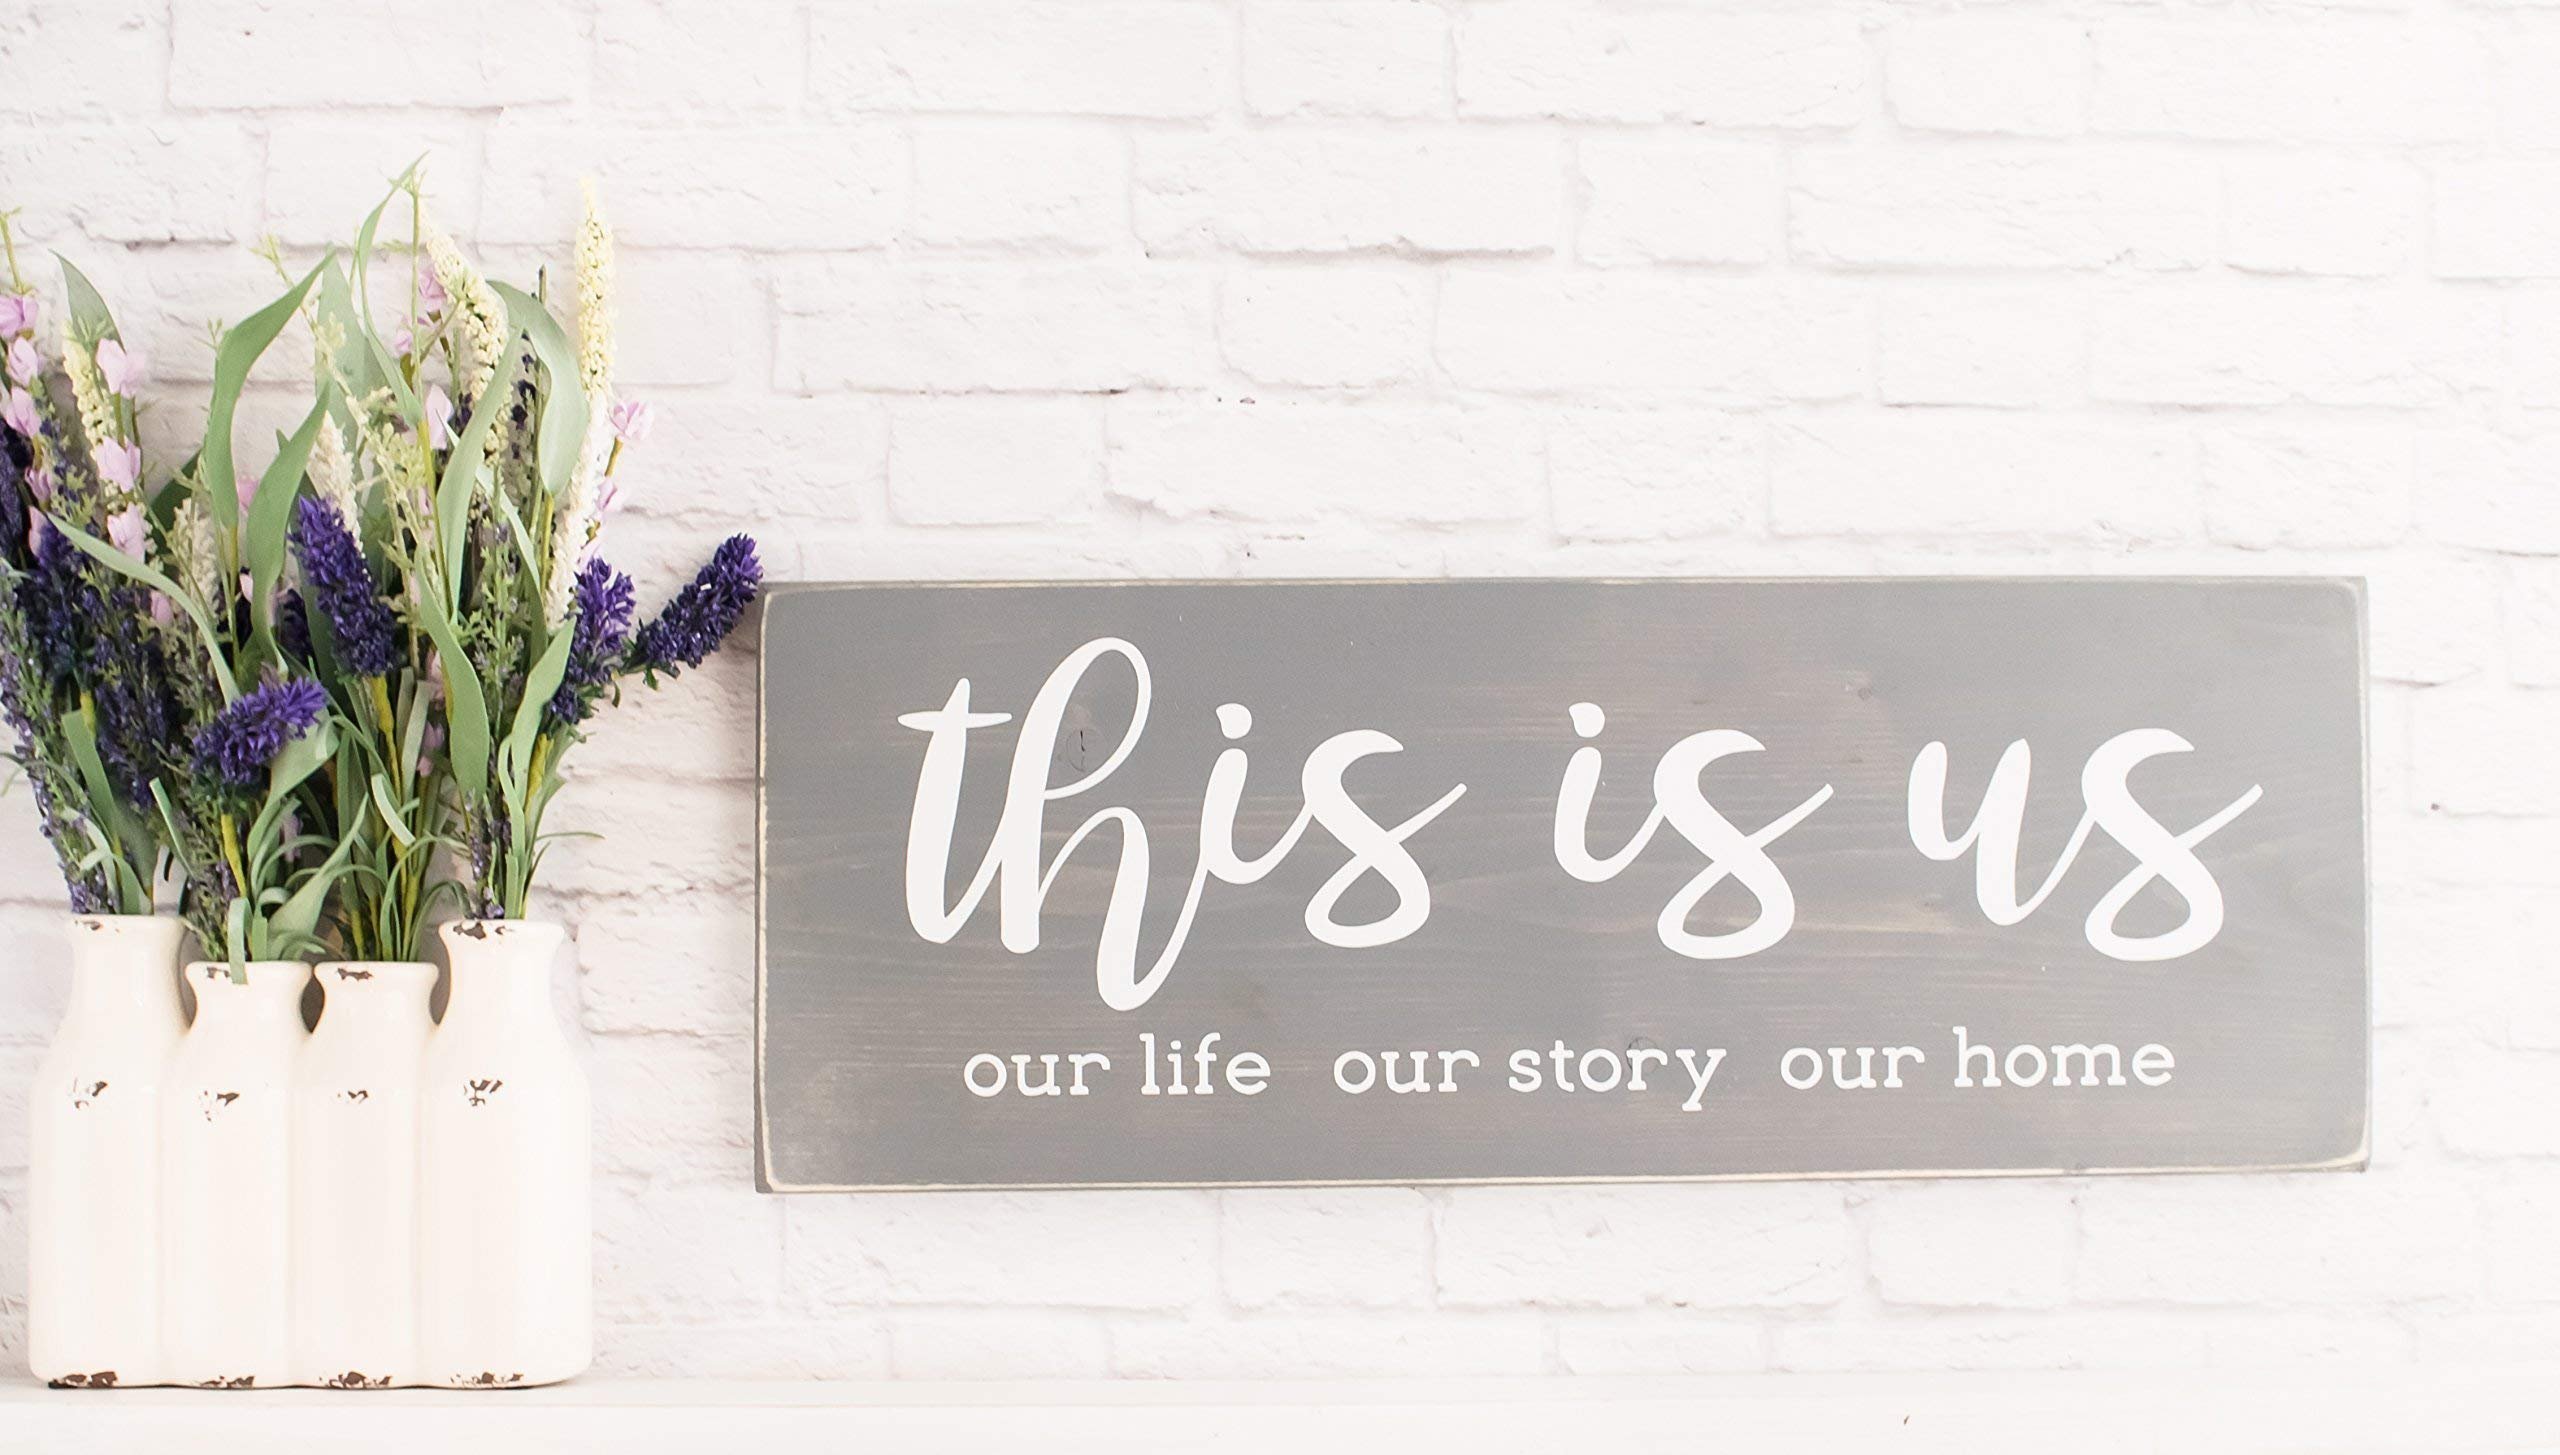 Gray This Is Us Wood Sign, Modern Farmhouse Style Wooden Wall Decor